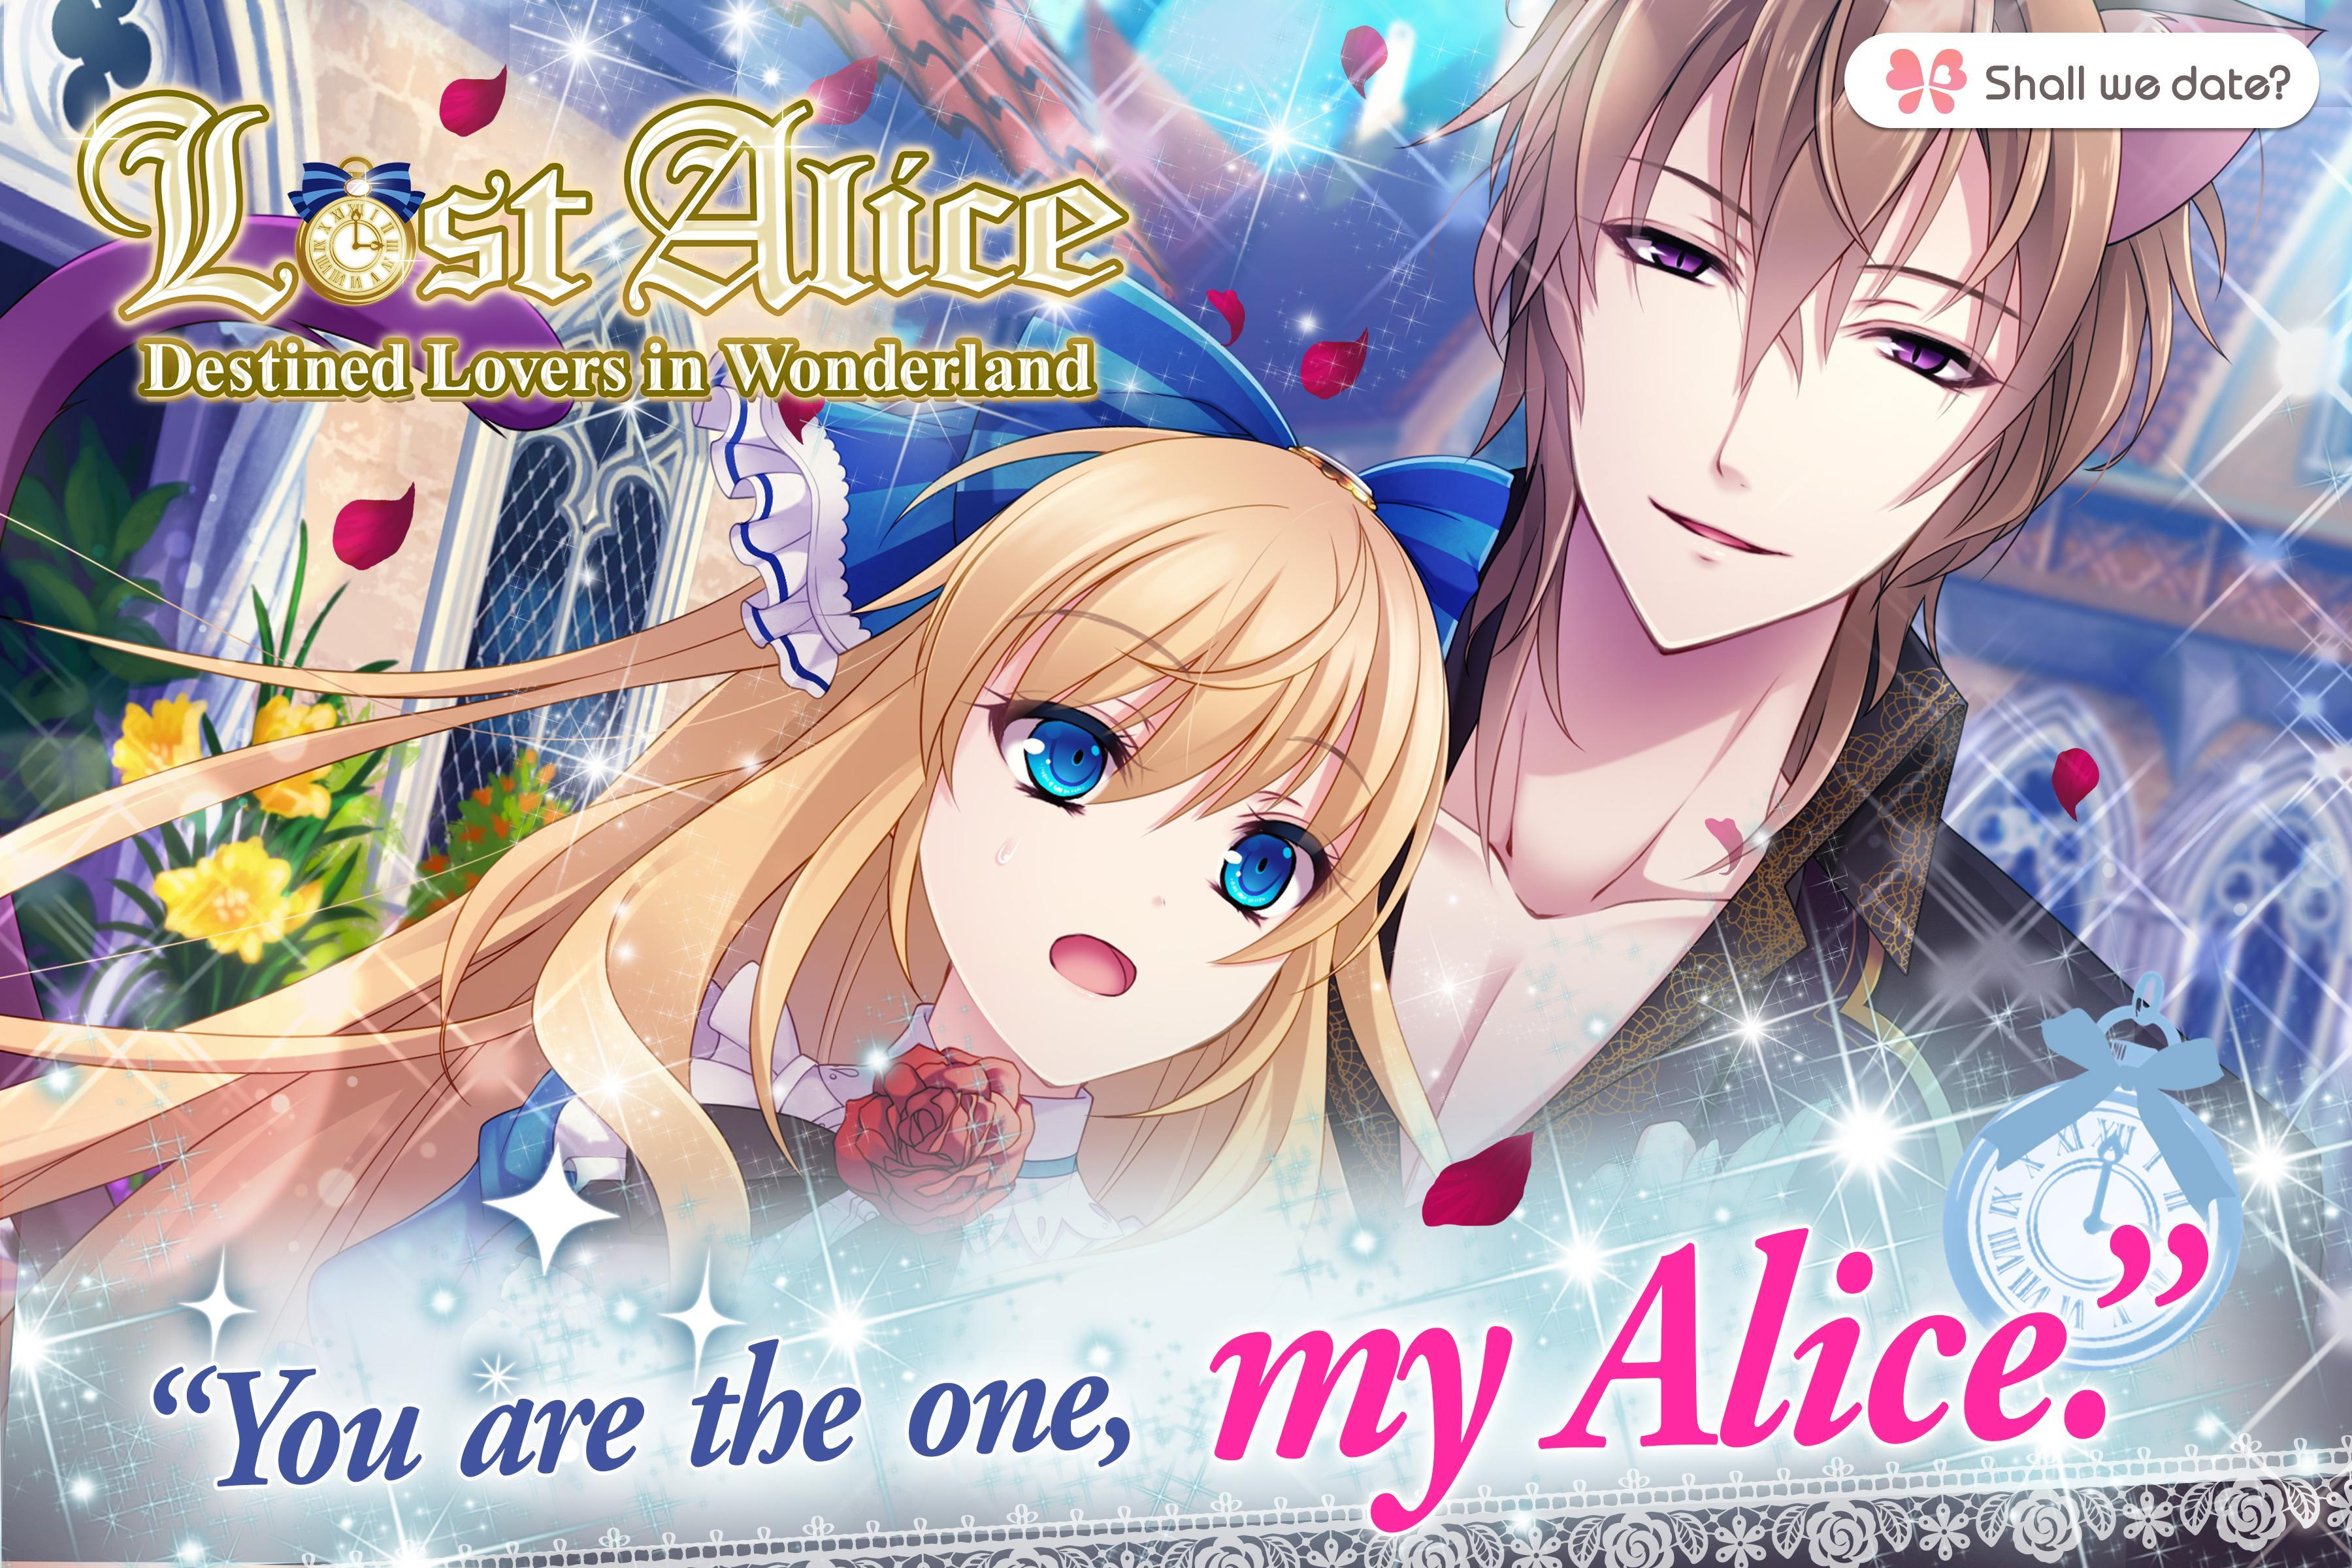 Lost Alice - otome game/dating sim #shall we date 1.5.1 Screenshot 18